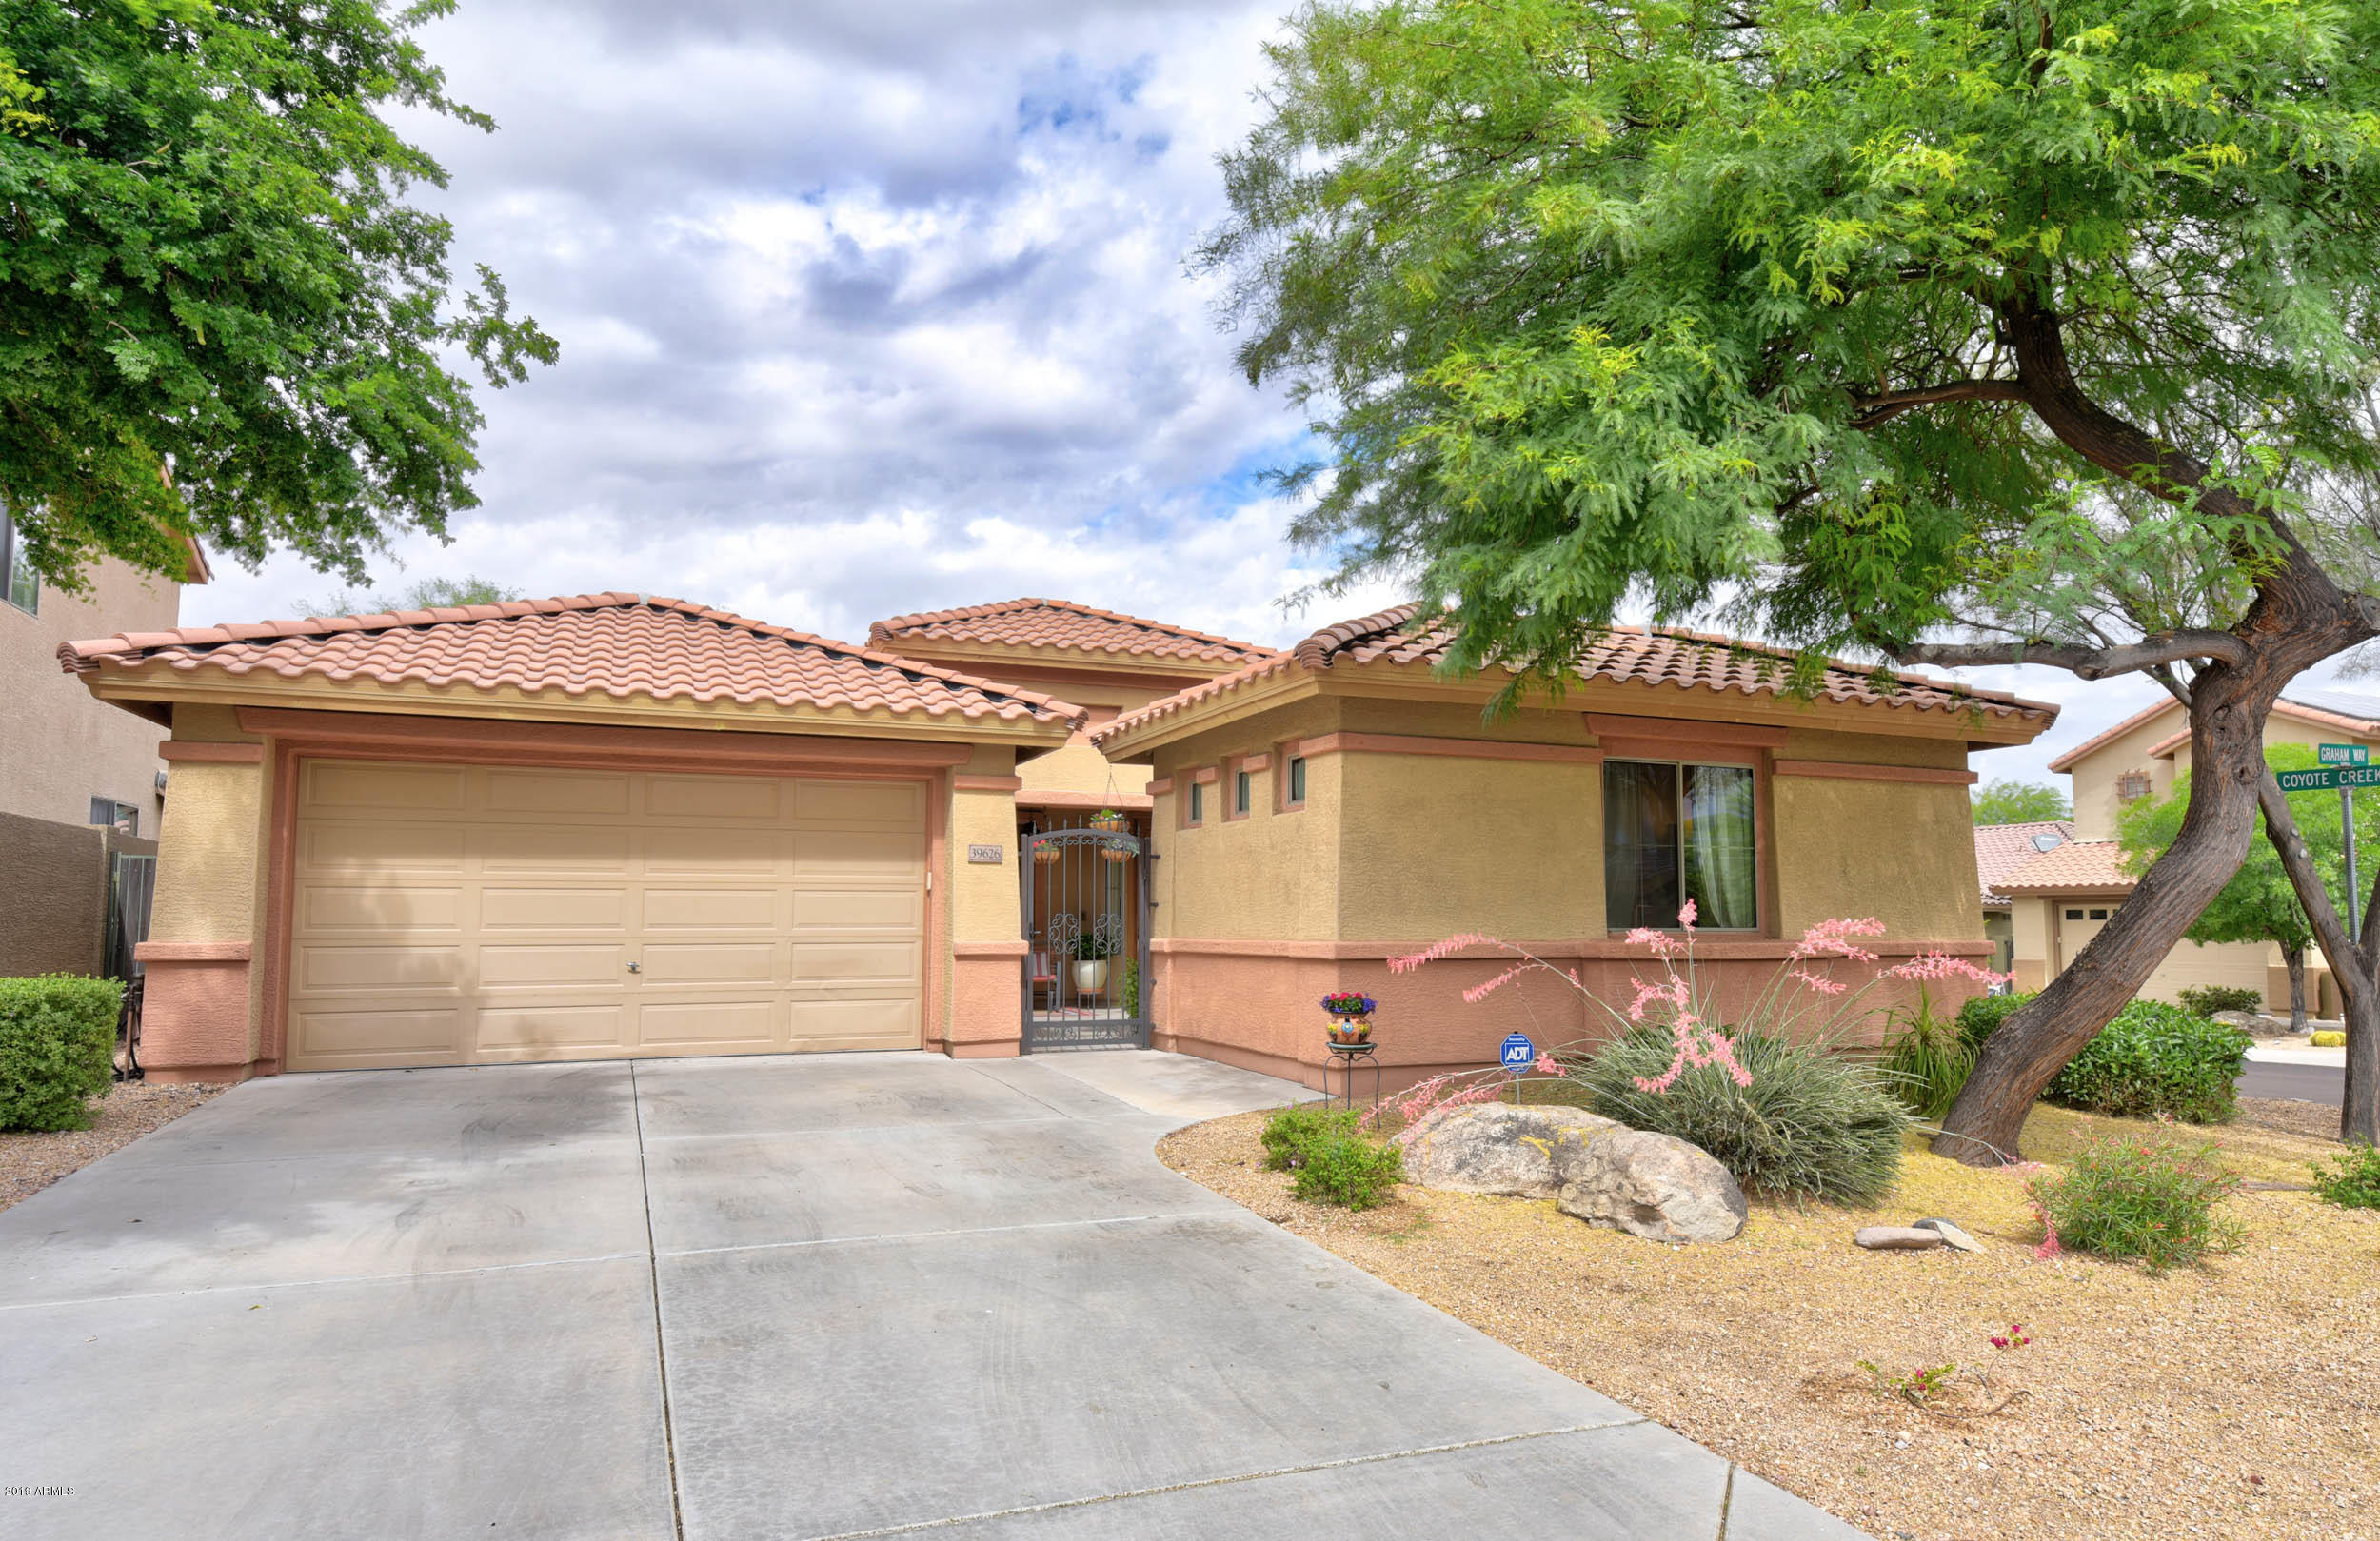 39626 N GRAHAM Way, Anthem in Maricopa County, AZ 85086 Home for Sale